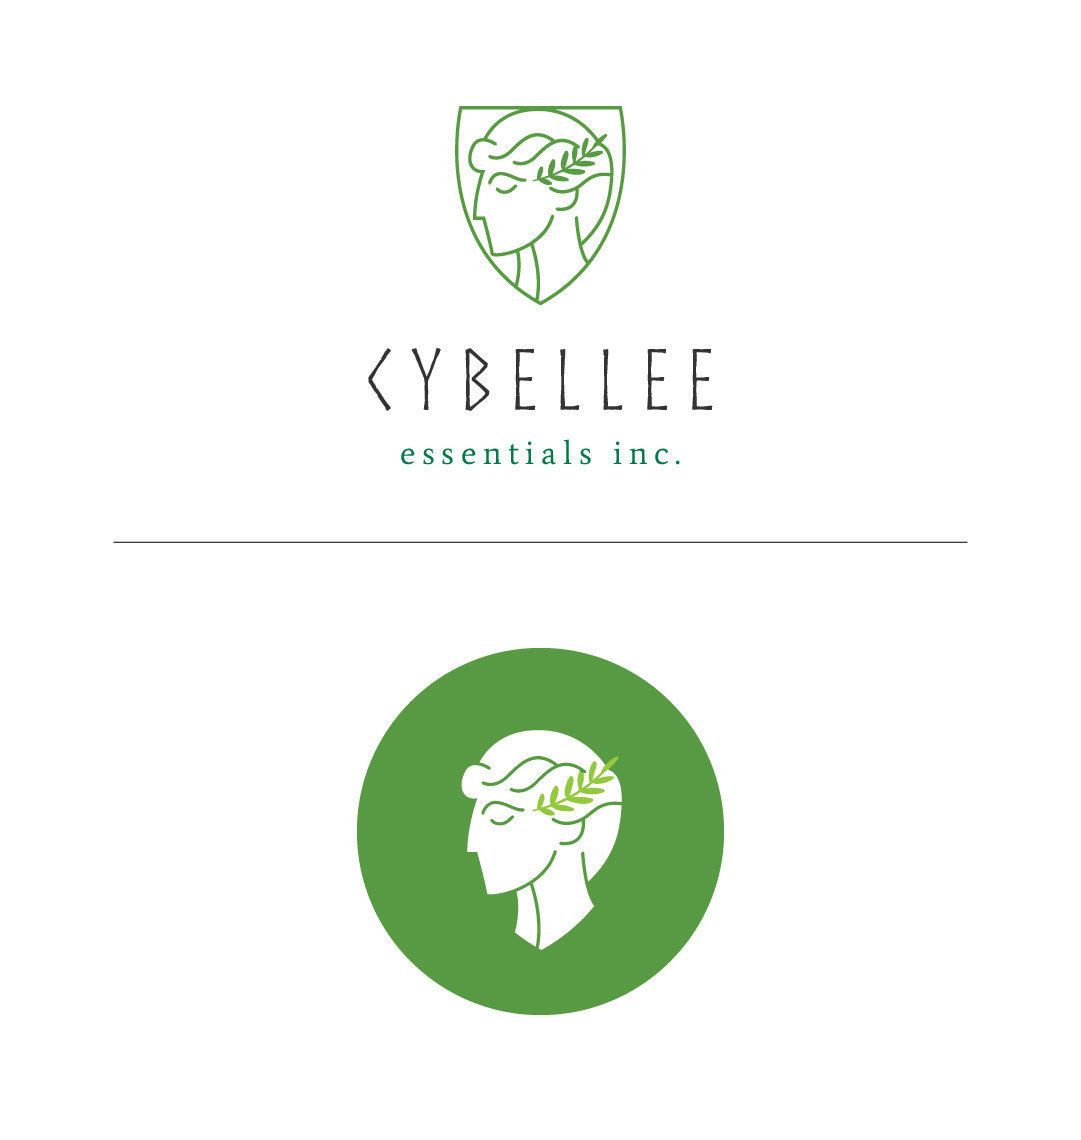 cybellee-mobile-12